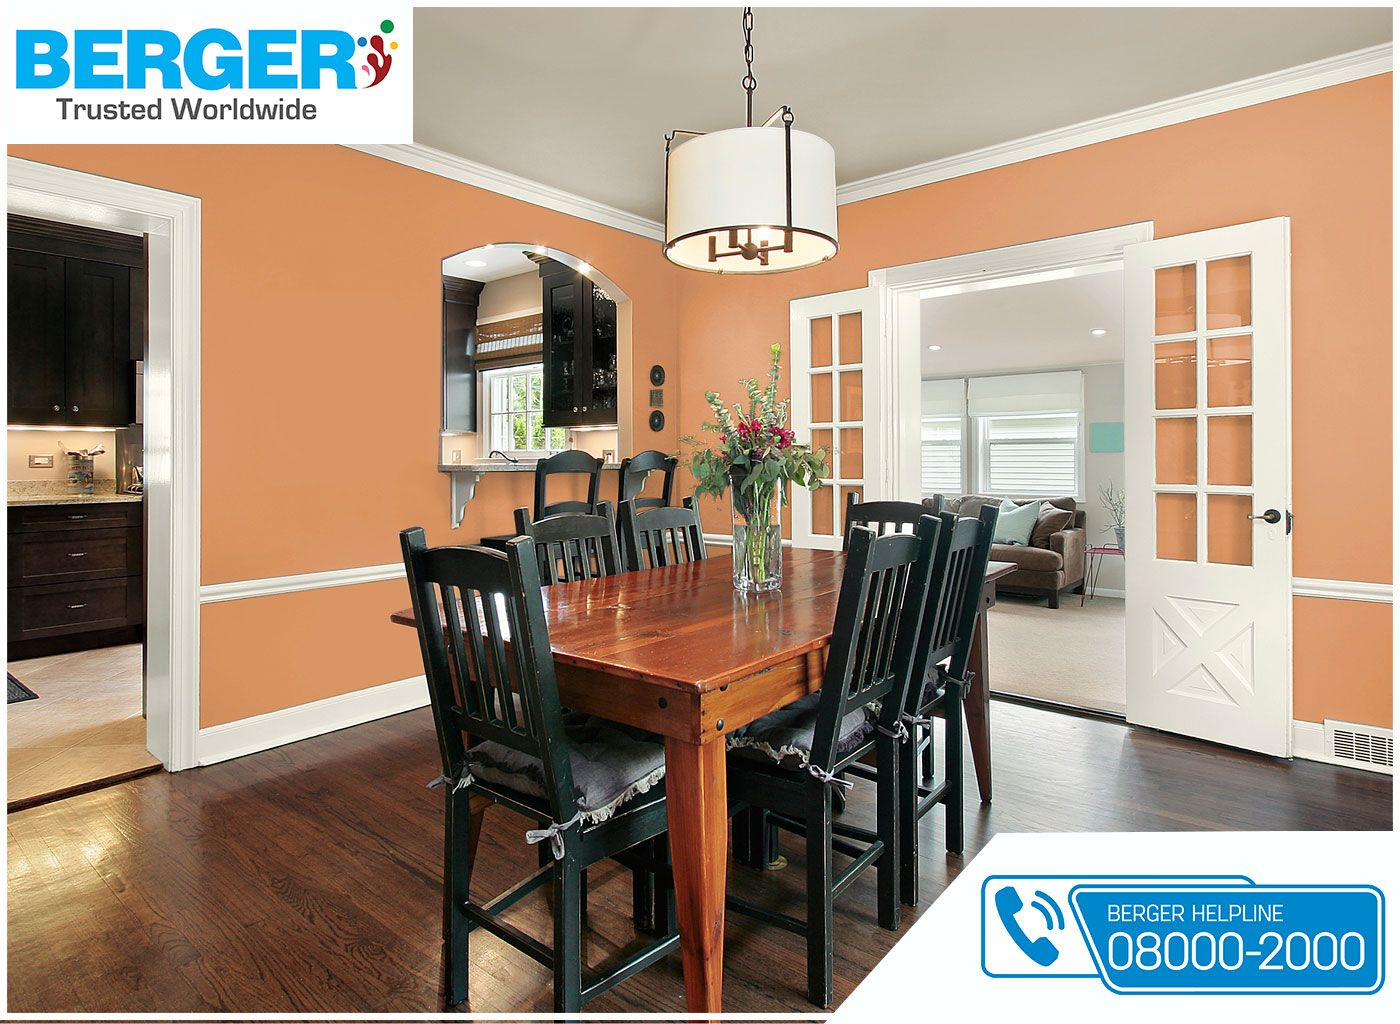 Try Peach Country Of Elegance Emulsion In Your Dining Room ~ Berger Paints # Paints #paint #color #colour #LivingRoom #decor #BergerPaints